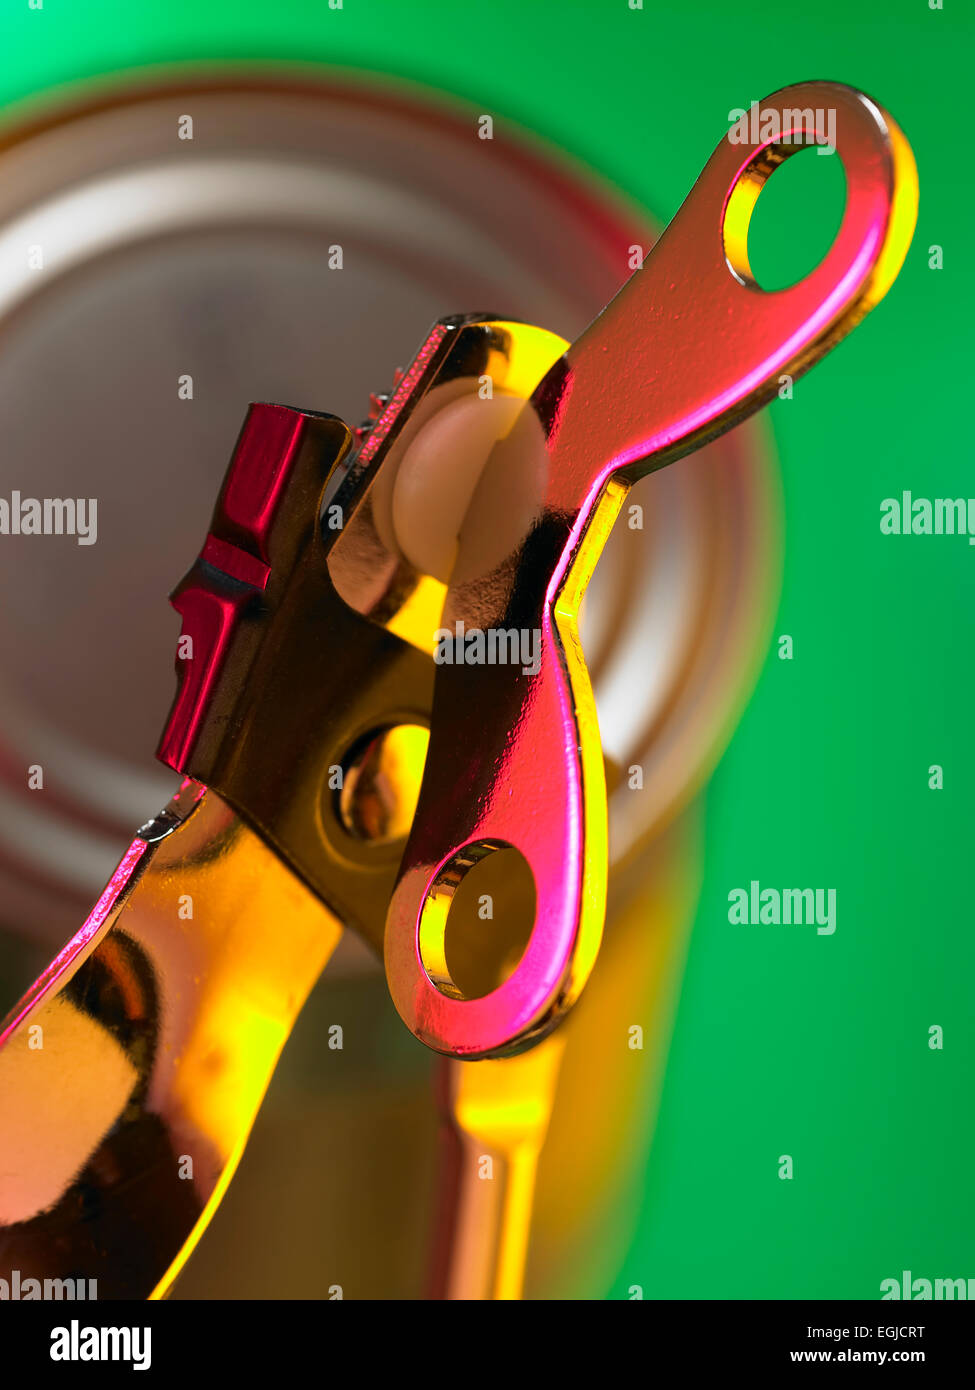 can opener and can - Stock Image